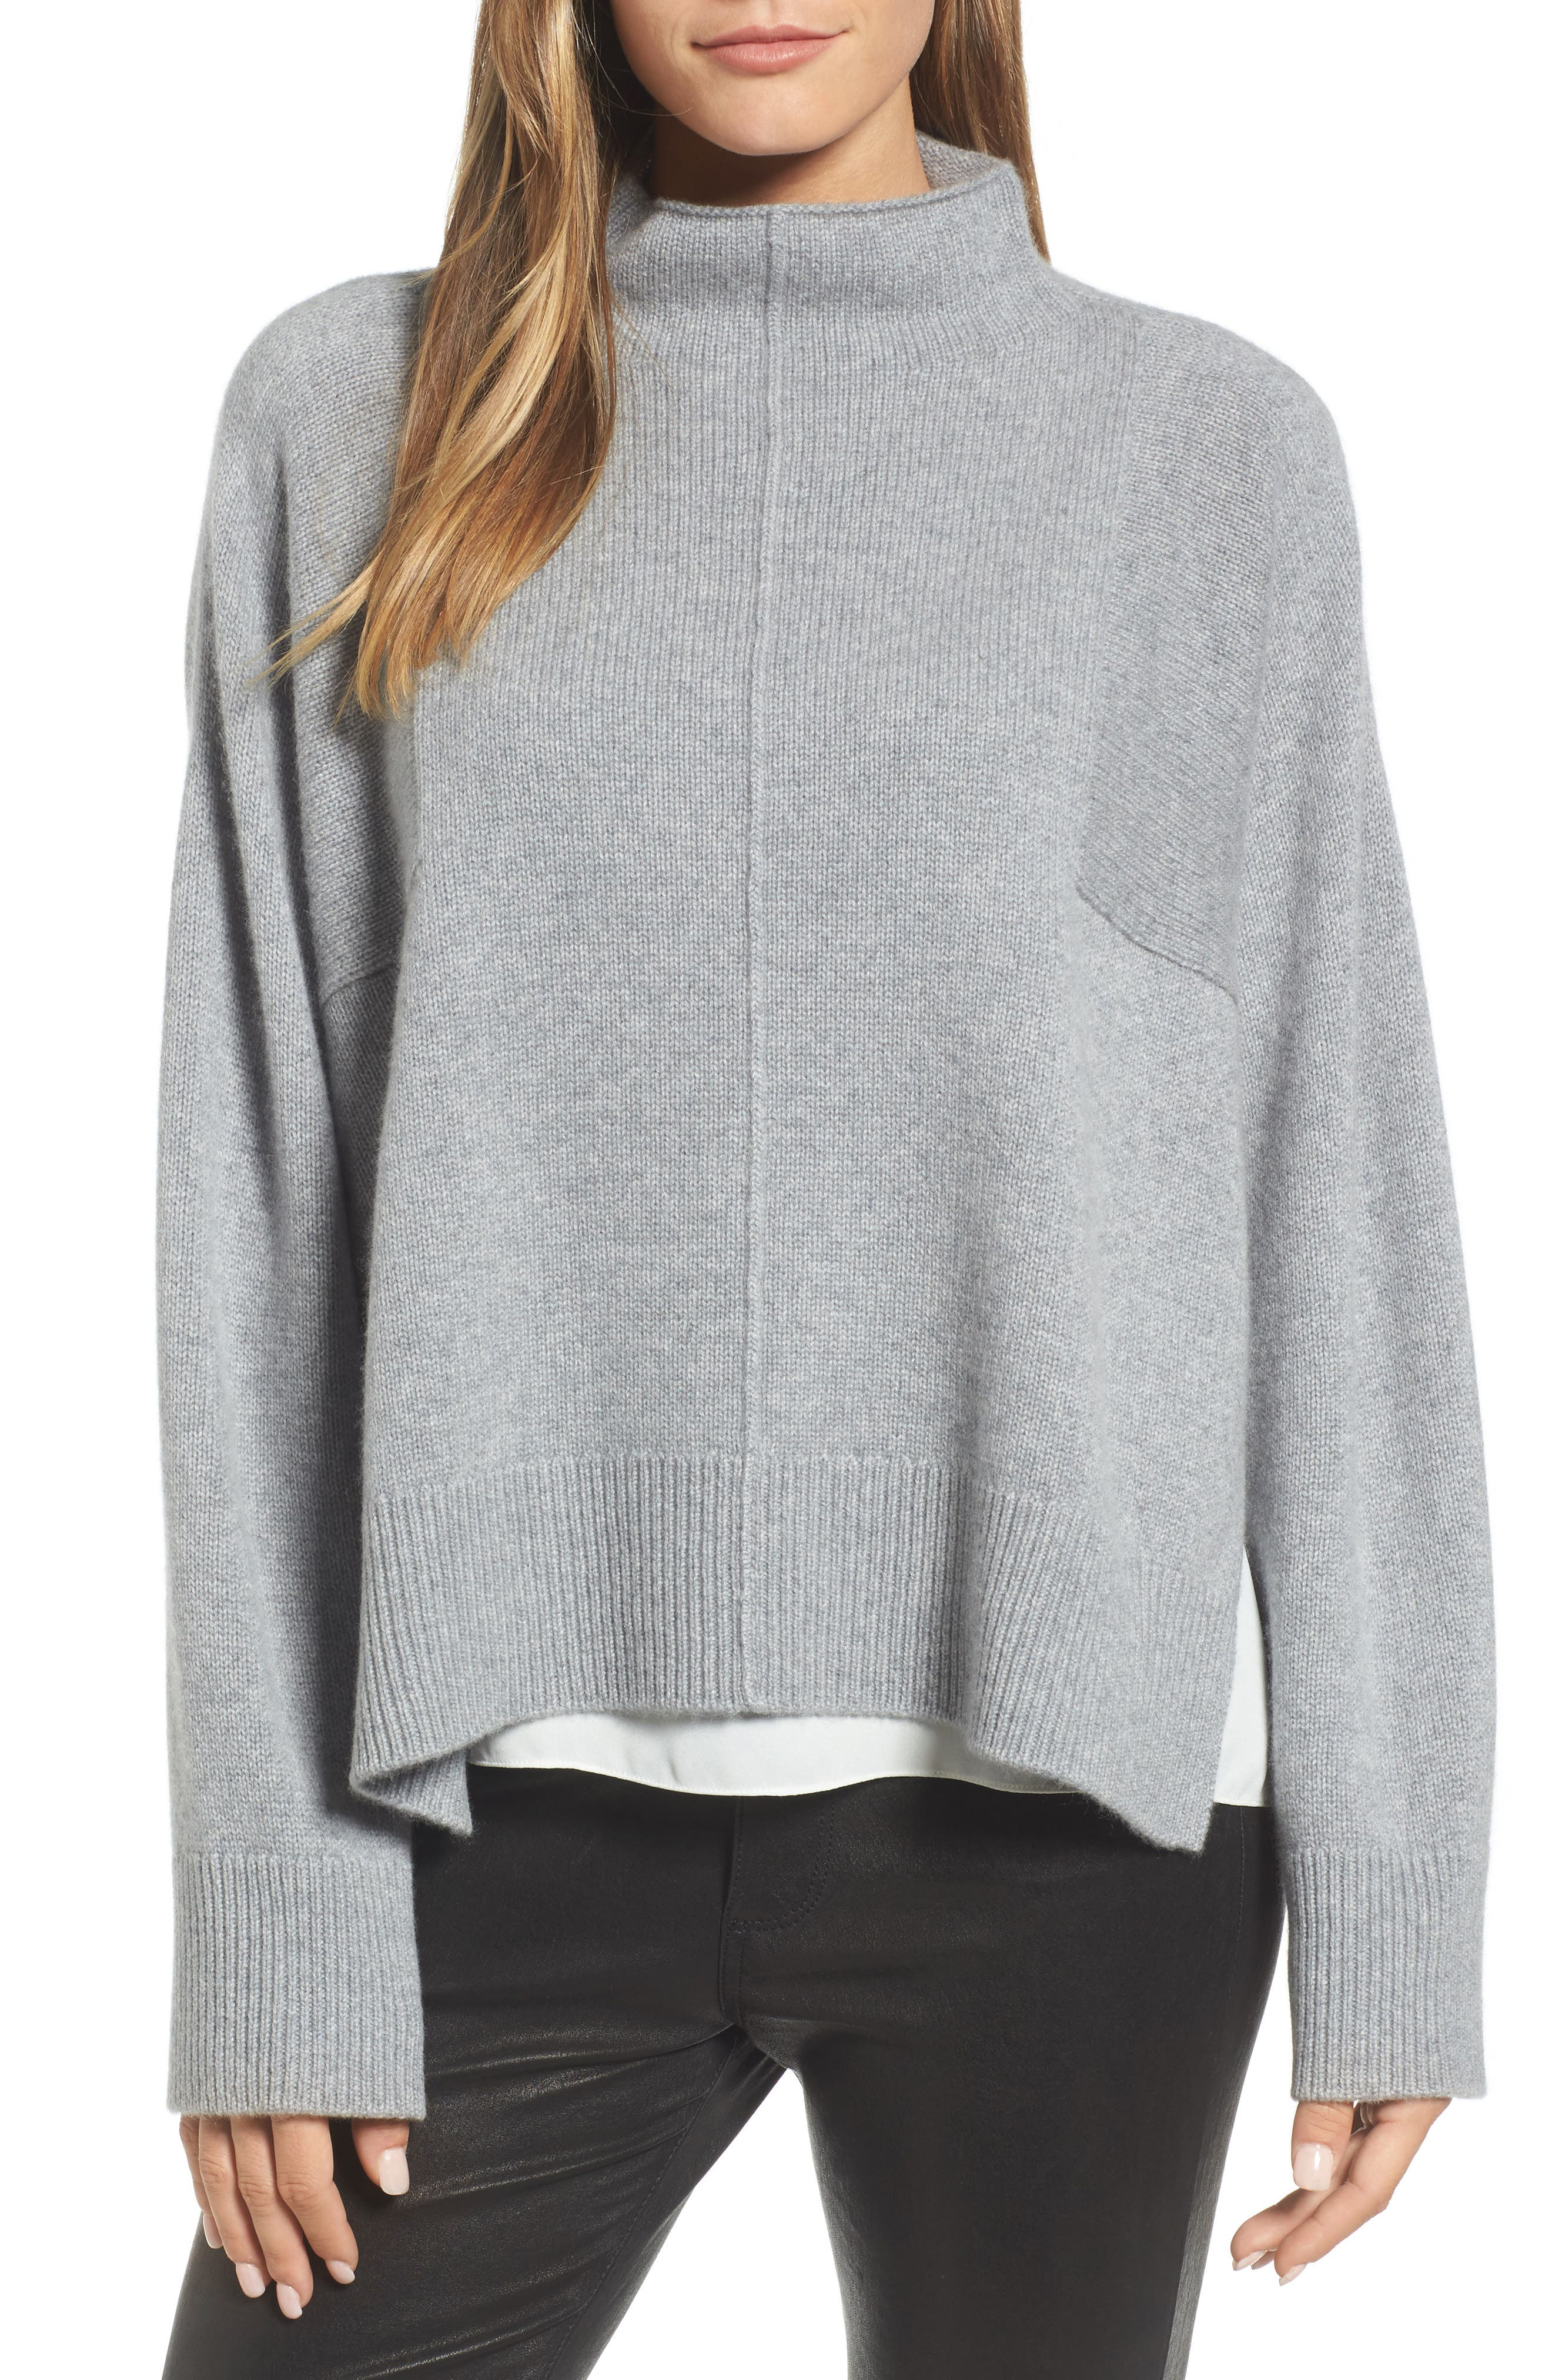 Nordstrom Signature Sweaters Cashmere Clothing & Accessories for ...